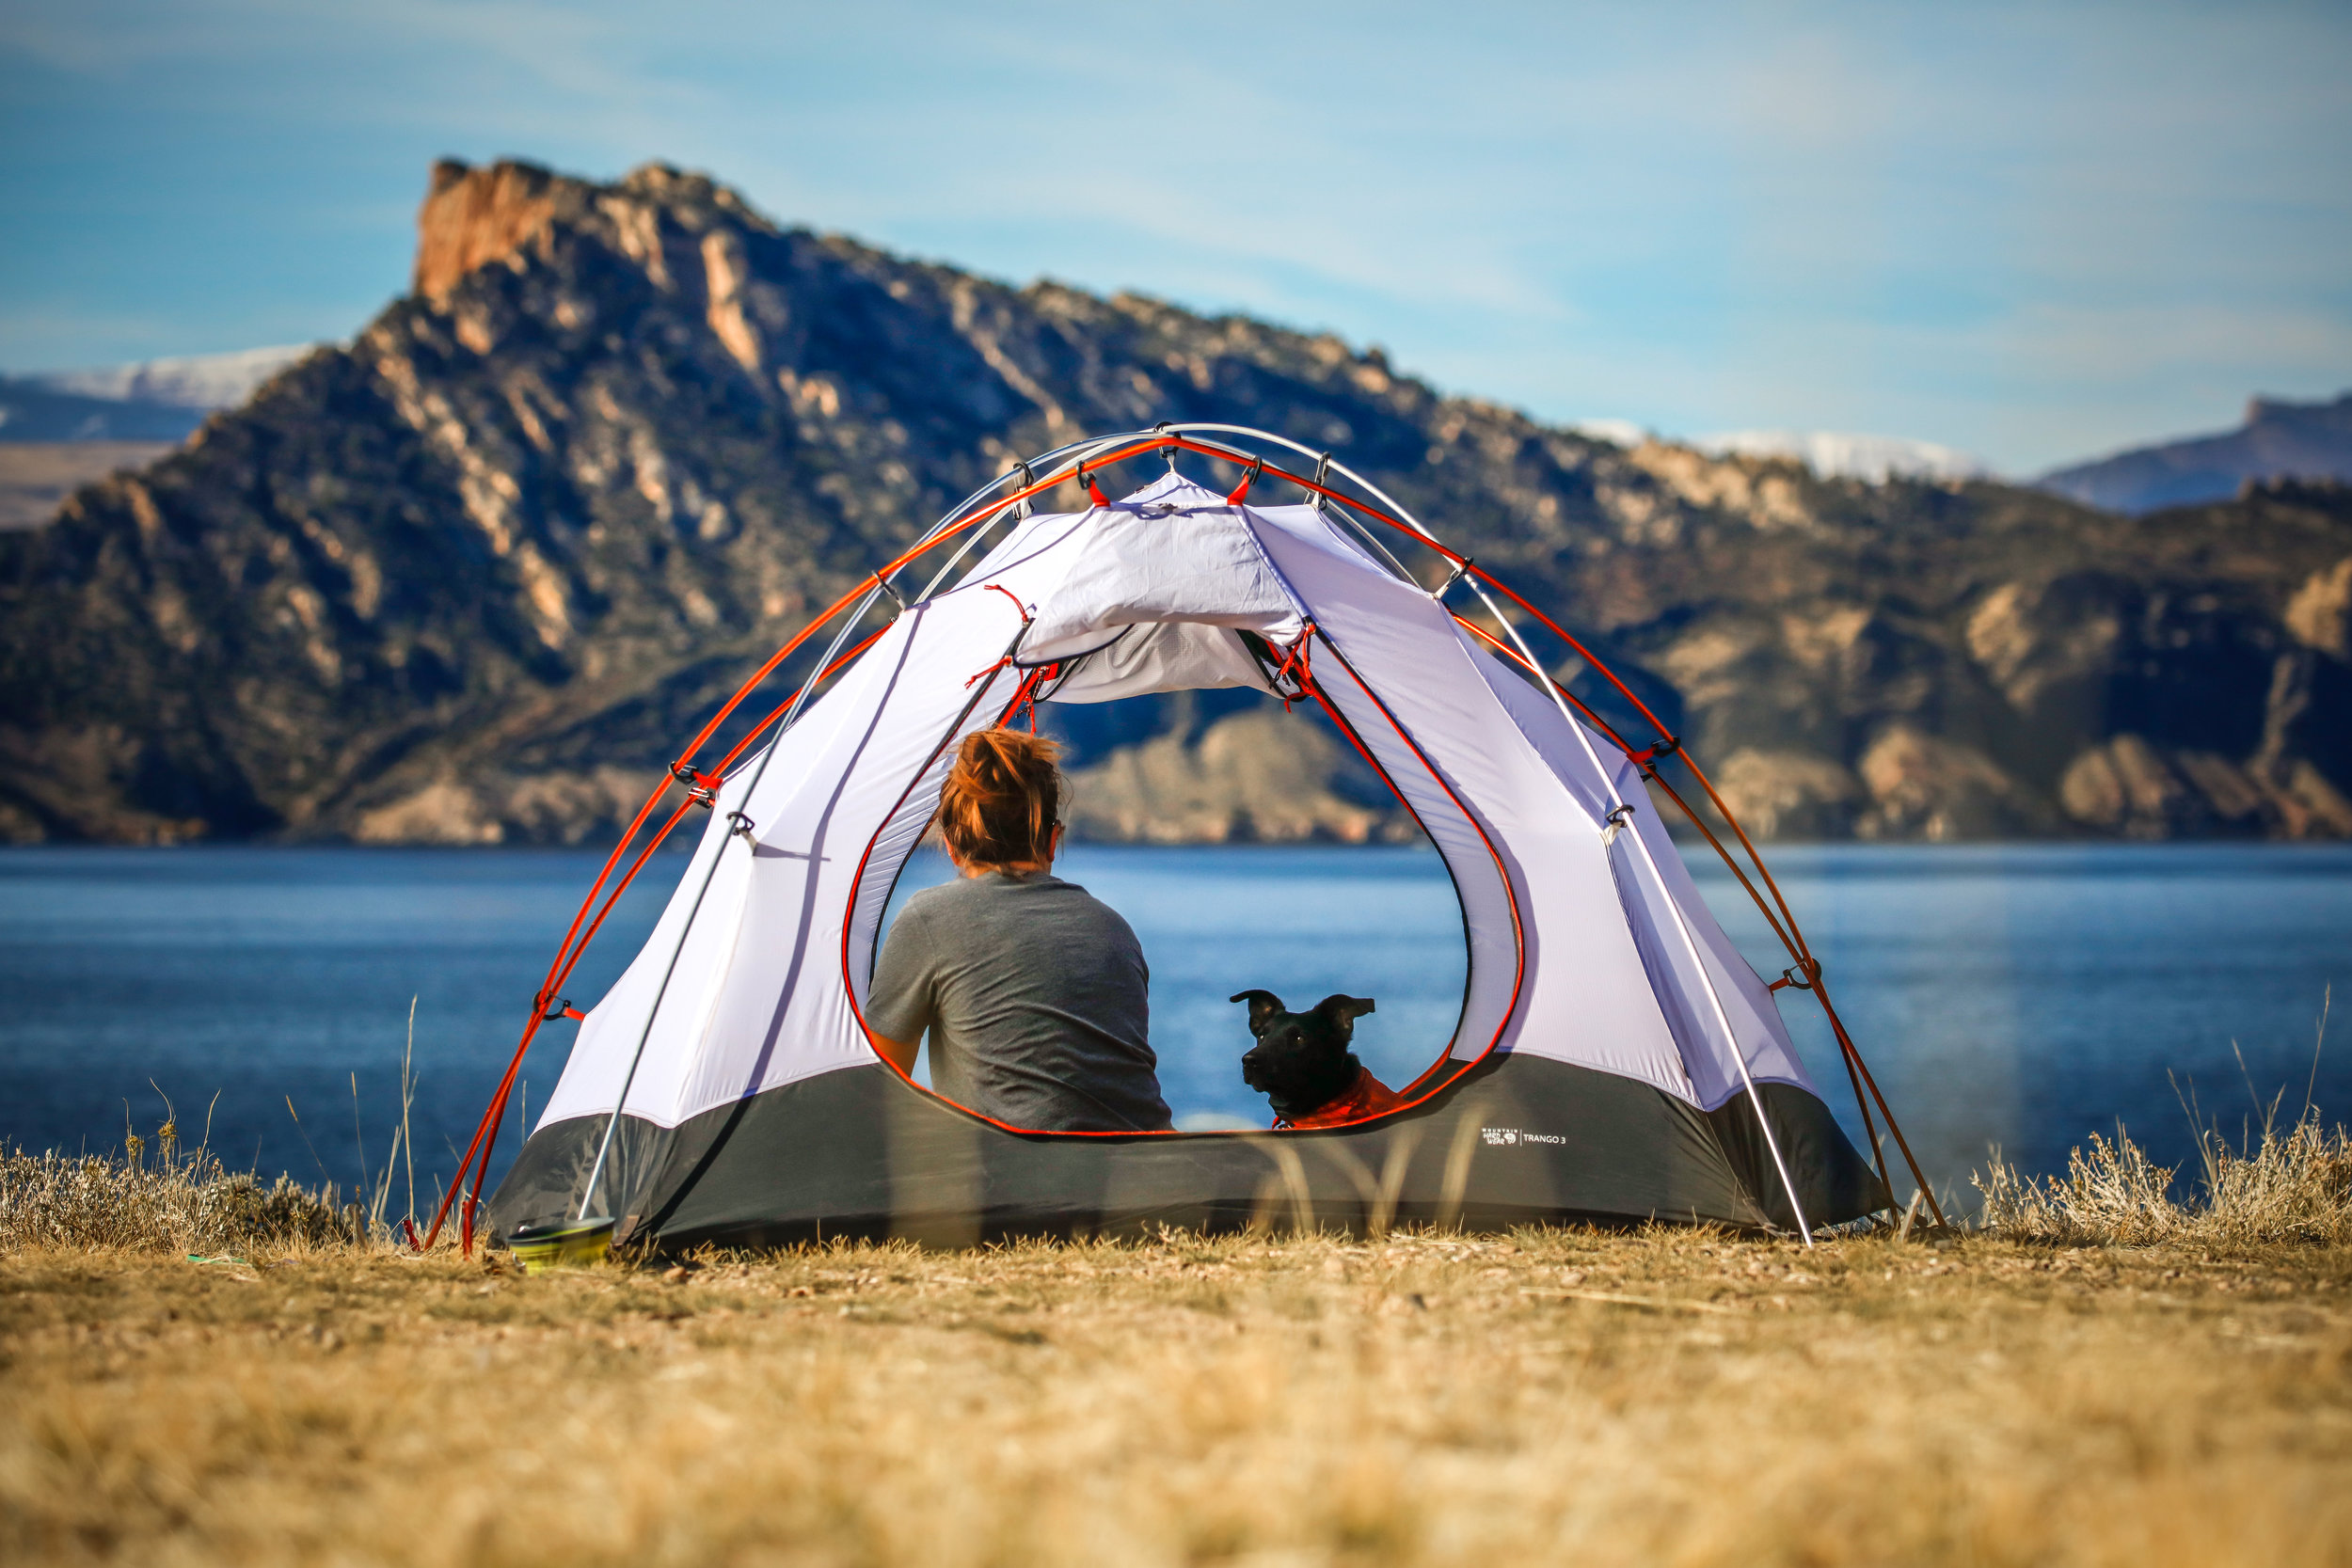 Choosing the correct camping sport can make or break your trip. Be sure to do your research and choose wisely.